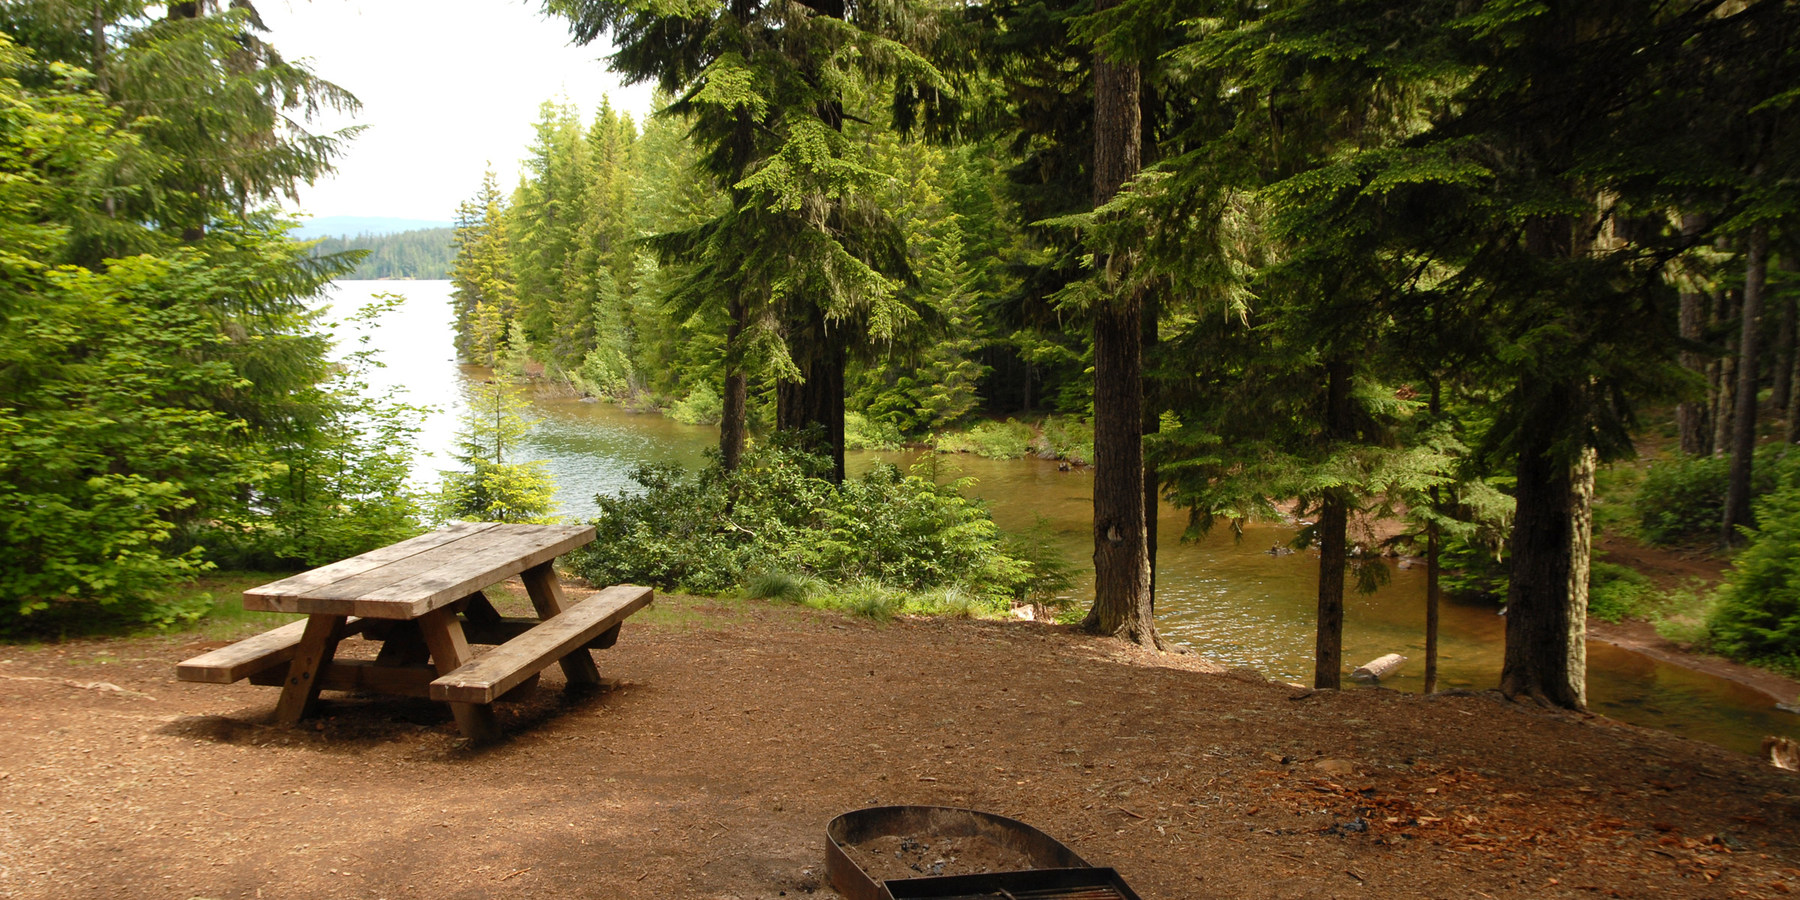 Escape to mount hoods 17 best campgrounds outdoor project timothy lake hoodview campground escape to mount hoods 17 best campgrounds publicscrutiny Image collections